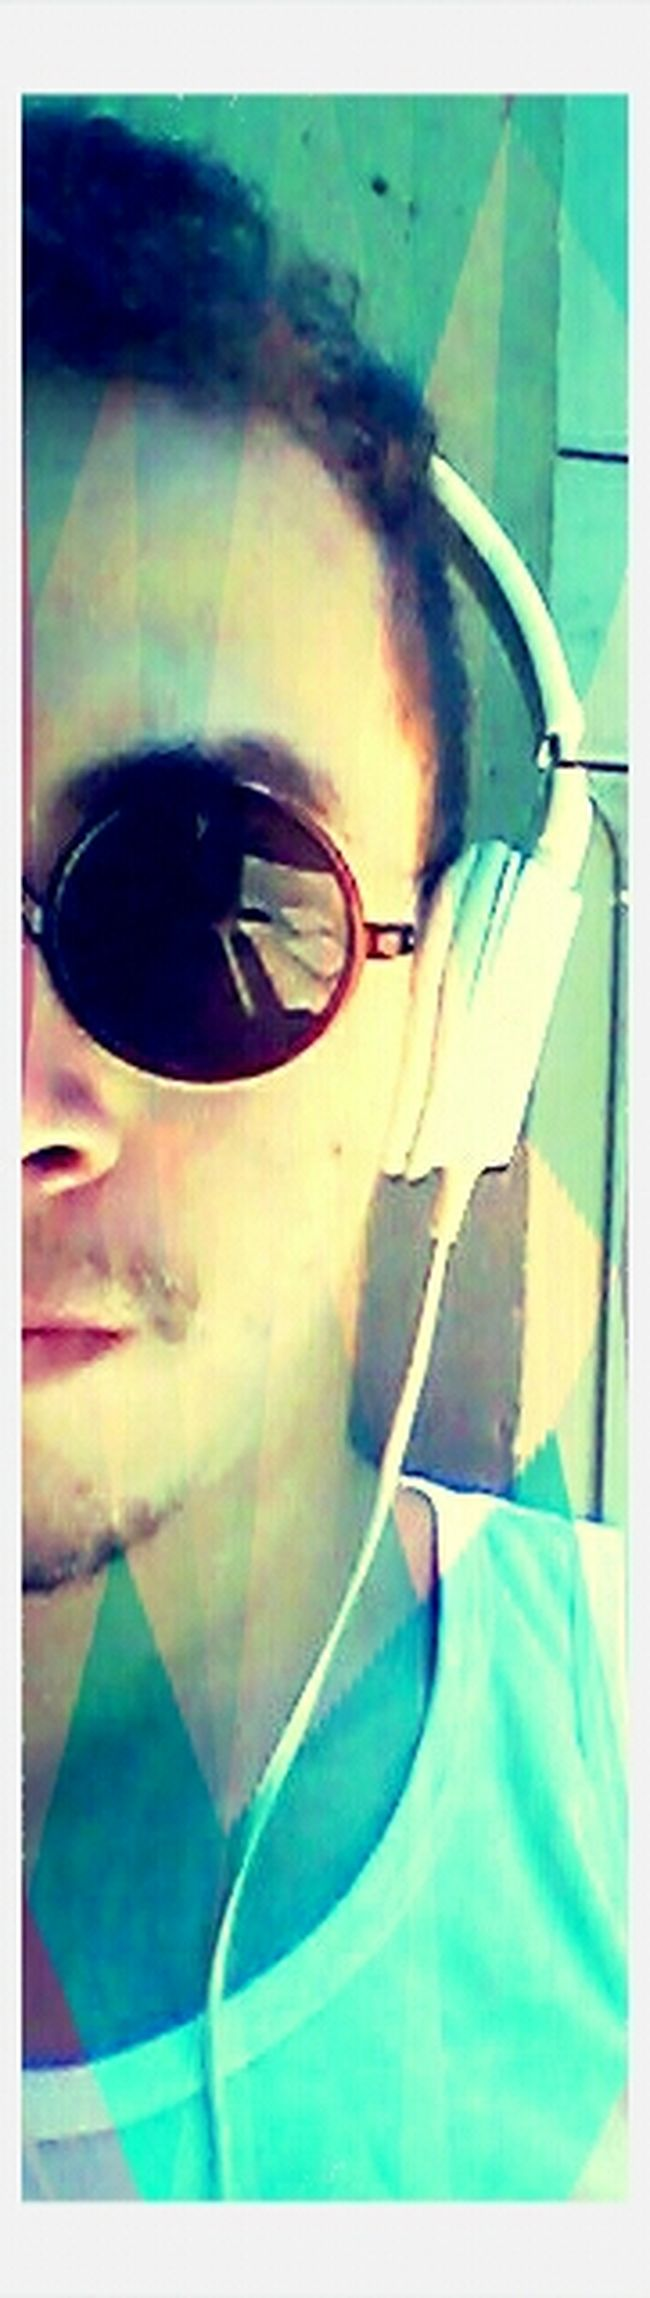 Gay Listening To Music Sexyboy Selfie